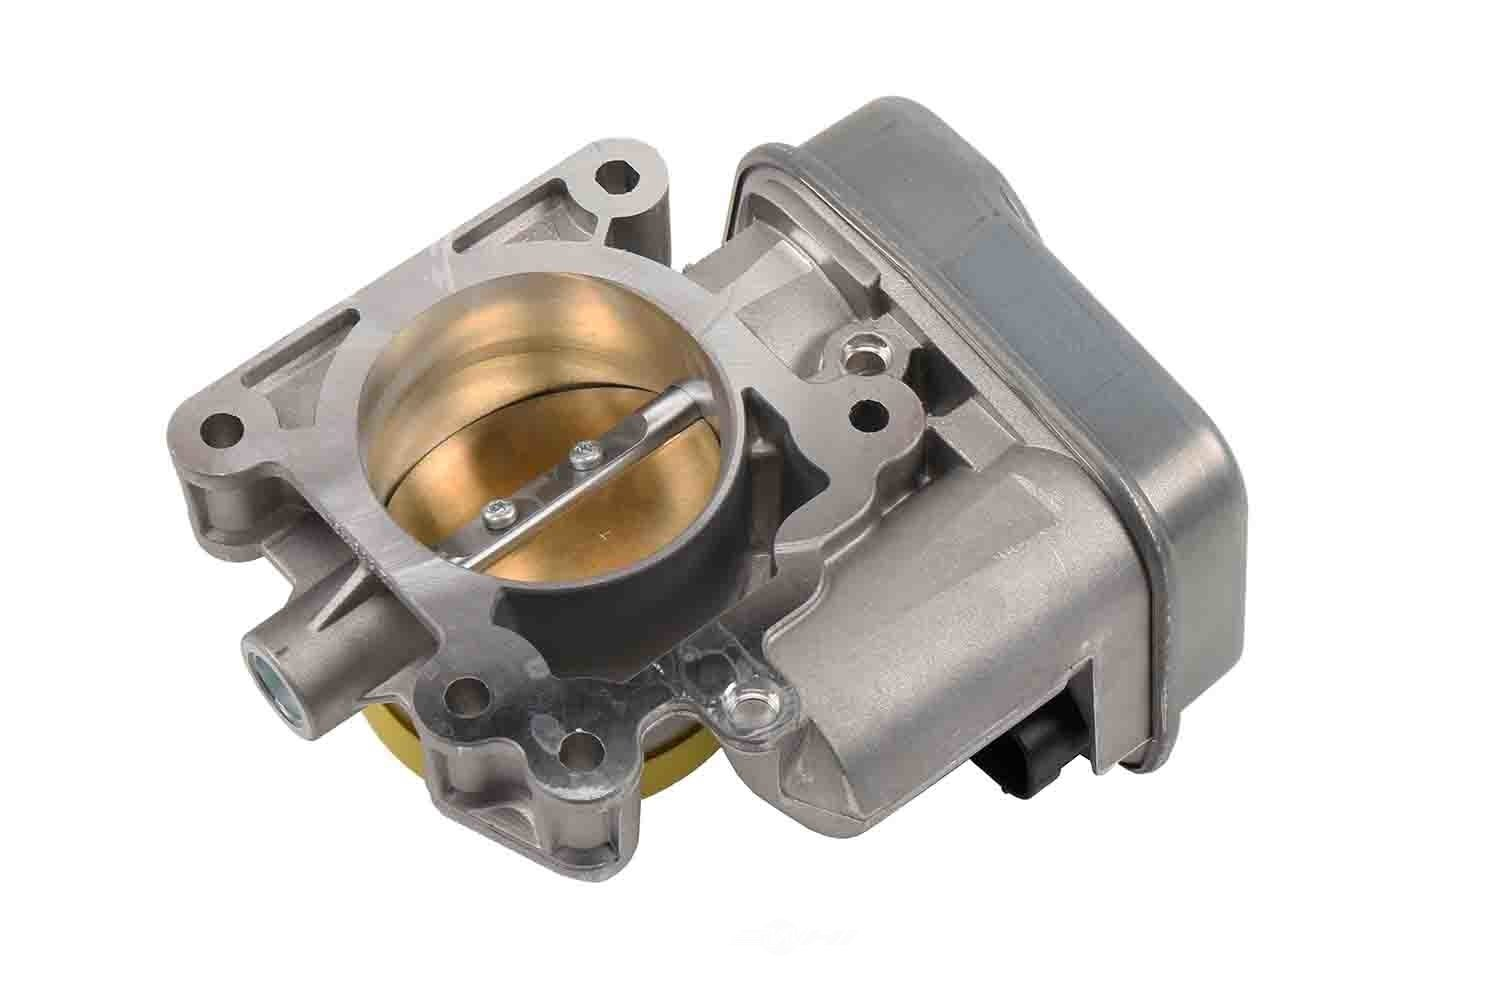 ACDELCO GM ORIGINAL EQUIPMENT - Fuel Injection Throttle Body Assembly - DCB 12568796